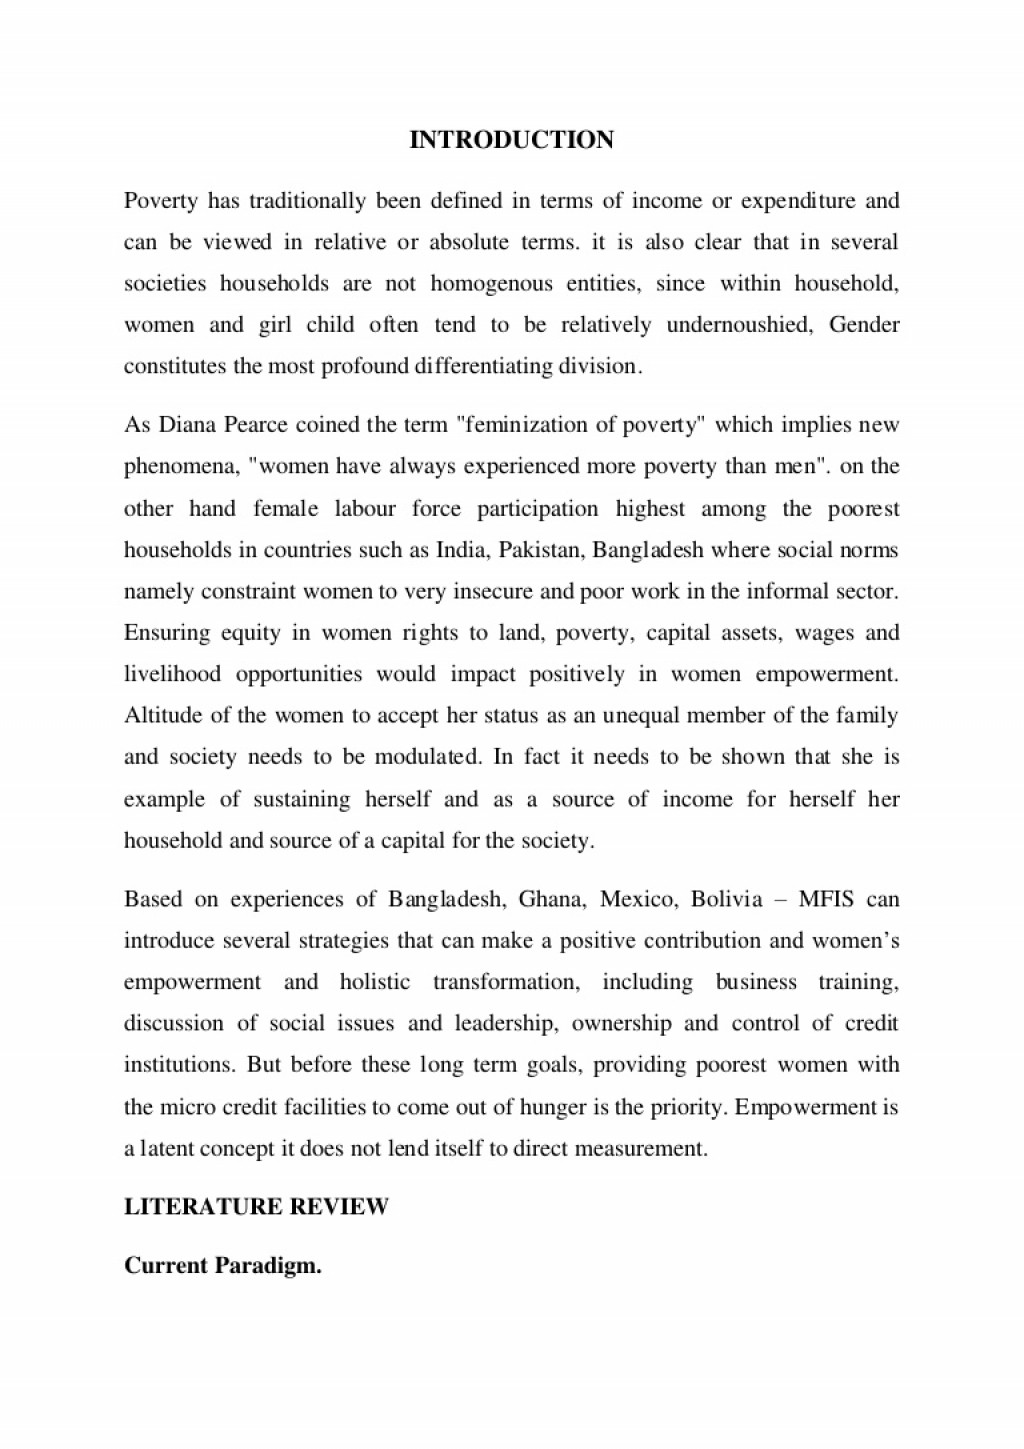 001 Poverty Has Traditionally Been Defined In Terms Of Income Or Expenditure And Can Viewed Relative Absolute Prepared By Naresh Sehdev Phpapp01 Thumbnail Exceptional Women Empowerment Essay Pdf Gender Equality Women's Large